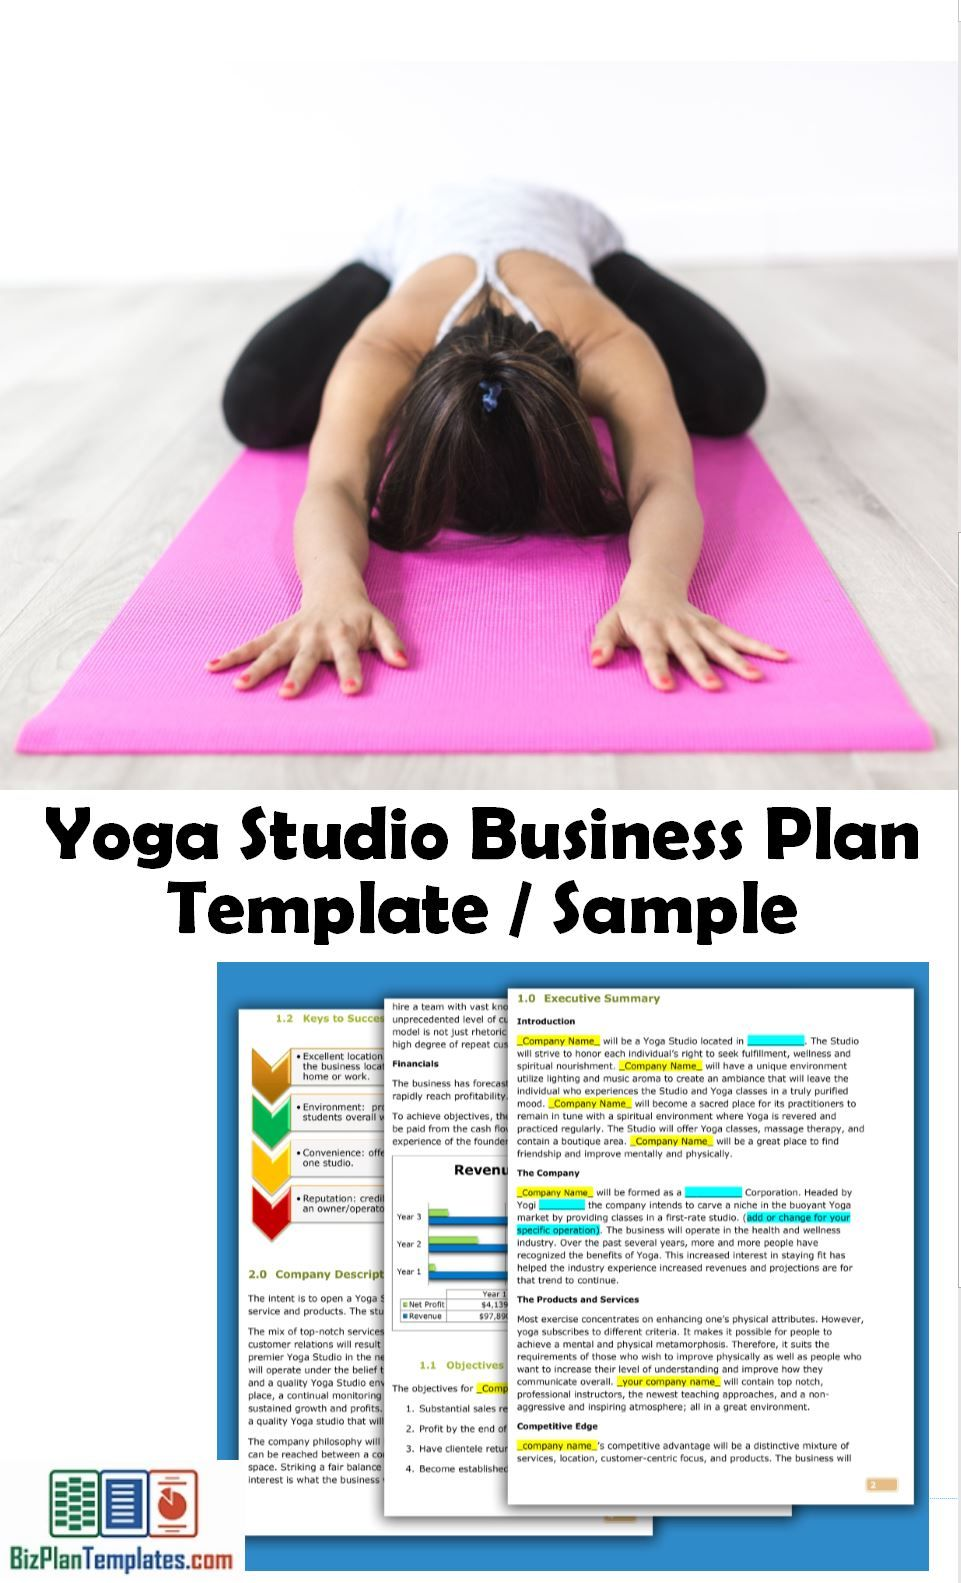 Business plan sample for a yoga studio fitness pinterest business plan sample for a yoga studio accmission Gallery